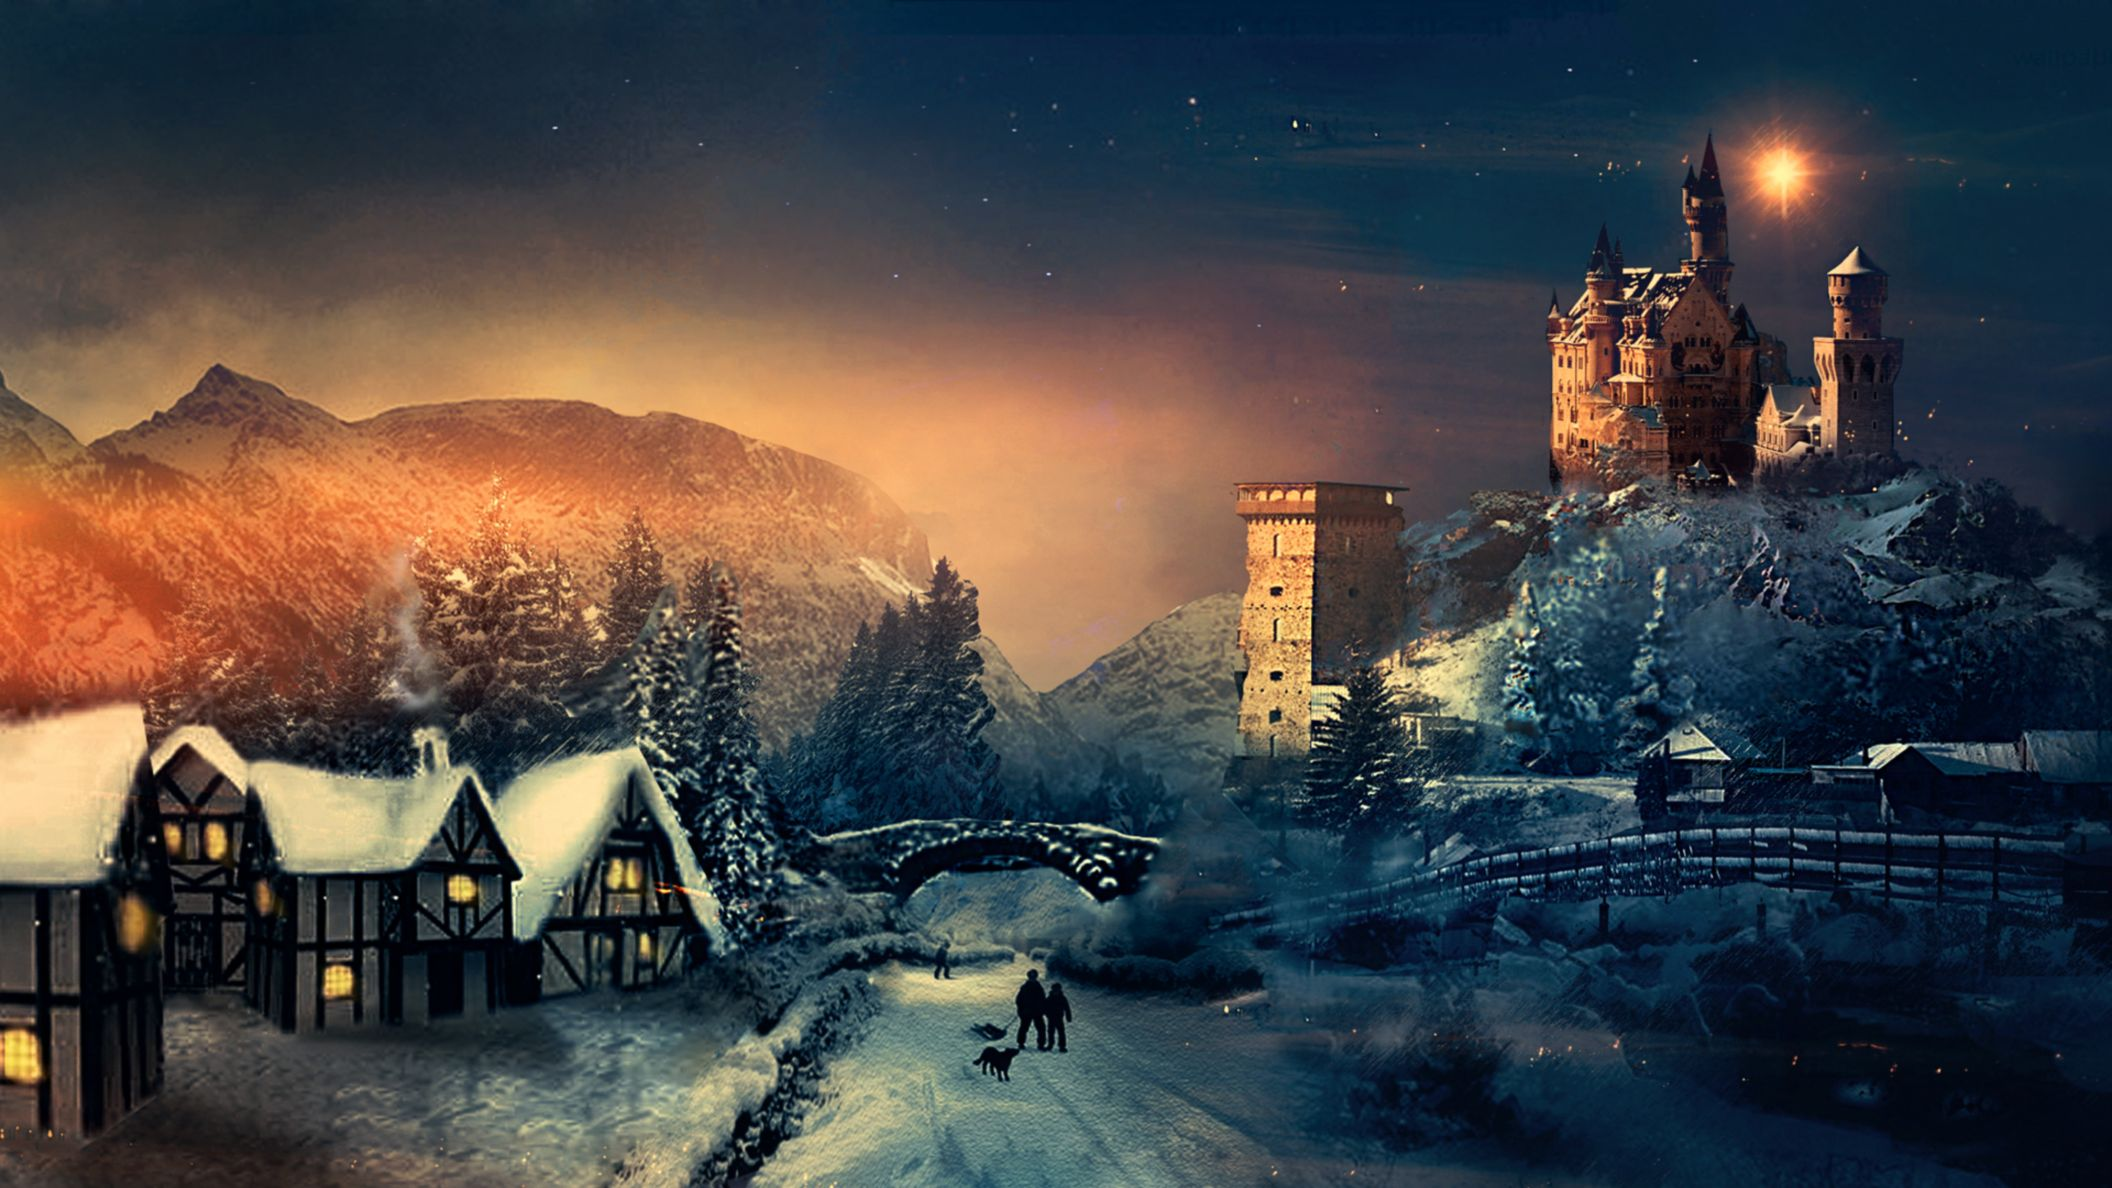 Download free HD Christmas Winter HD Wallpaper, image